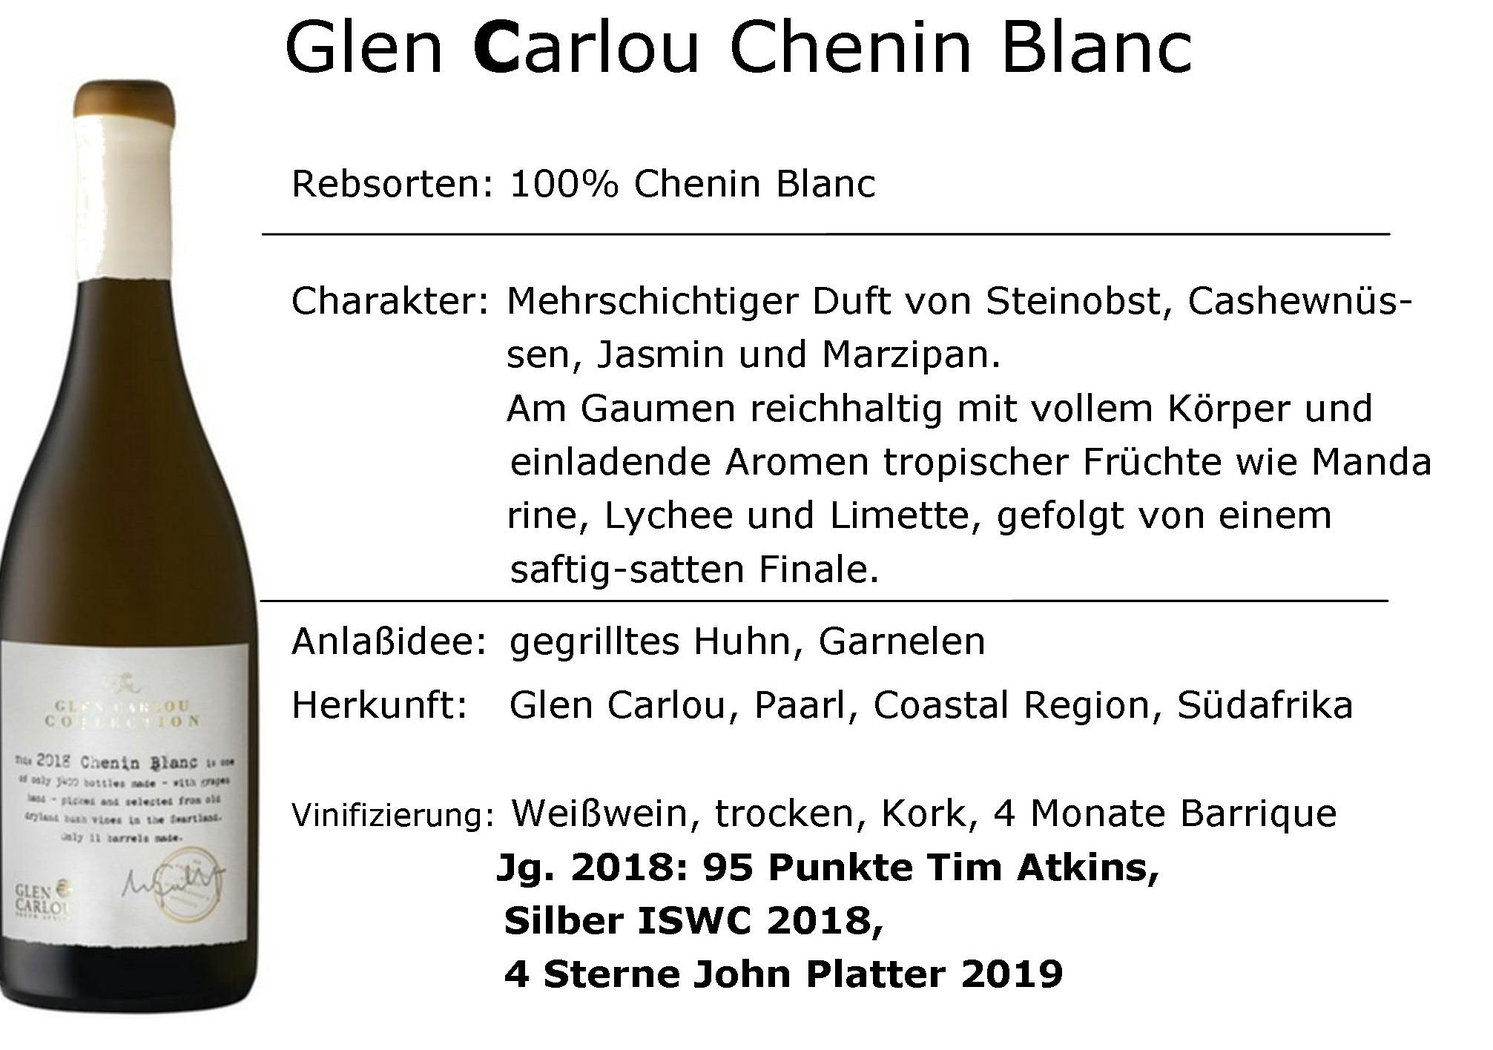 Glen Carlou Collection Chenin Blanc 2018